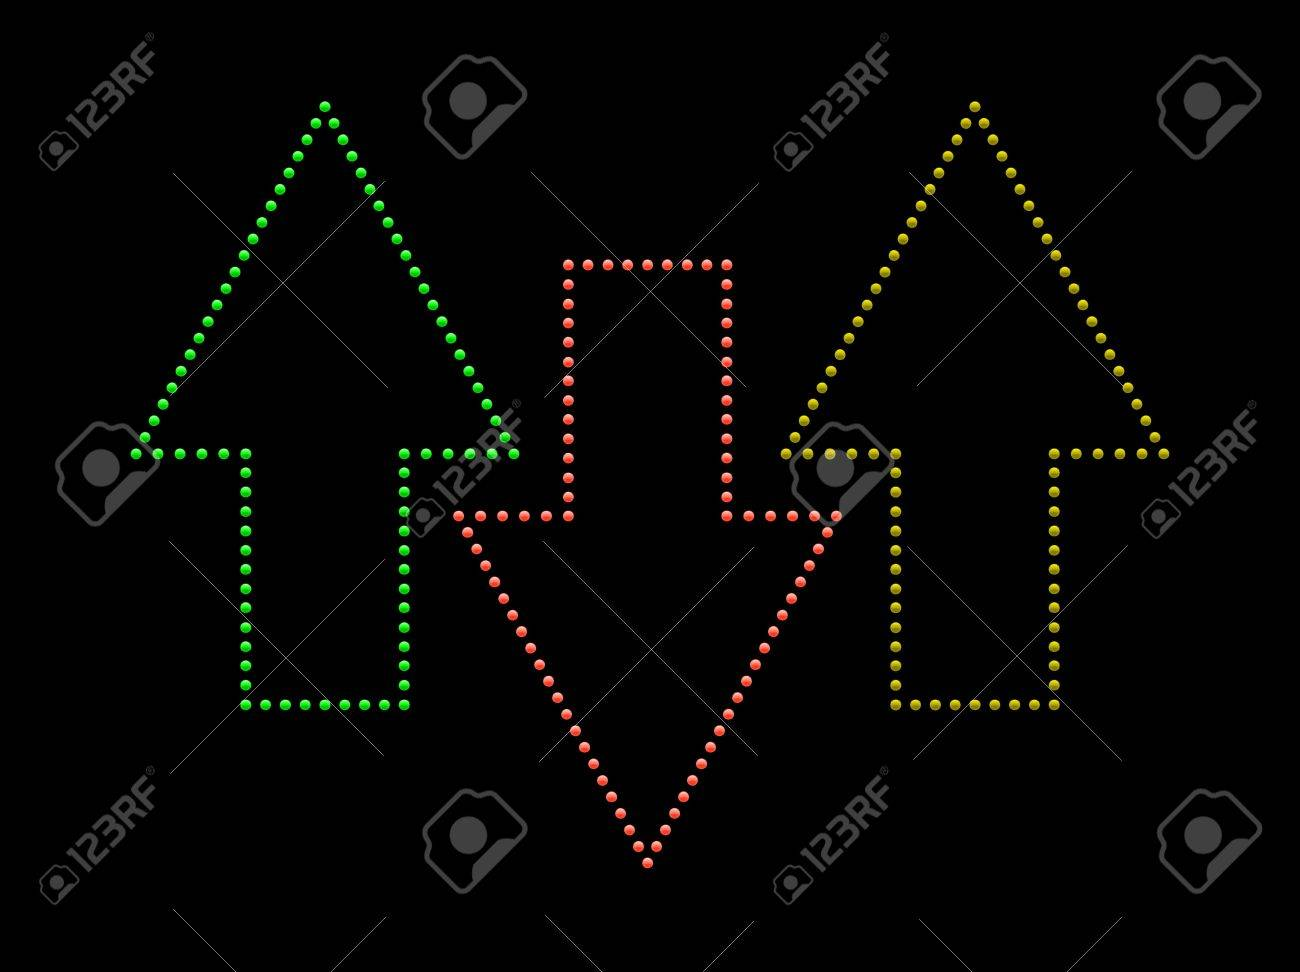 Illustration of colored arrows made up from shiny light buttons. - 9757256